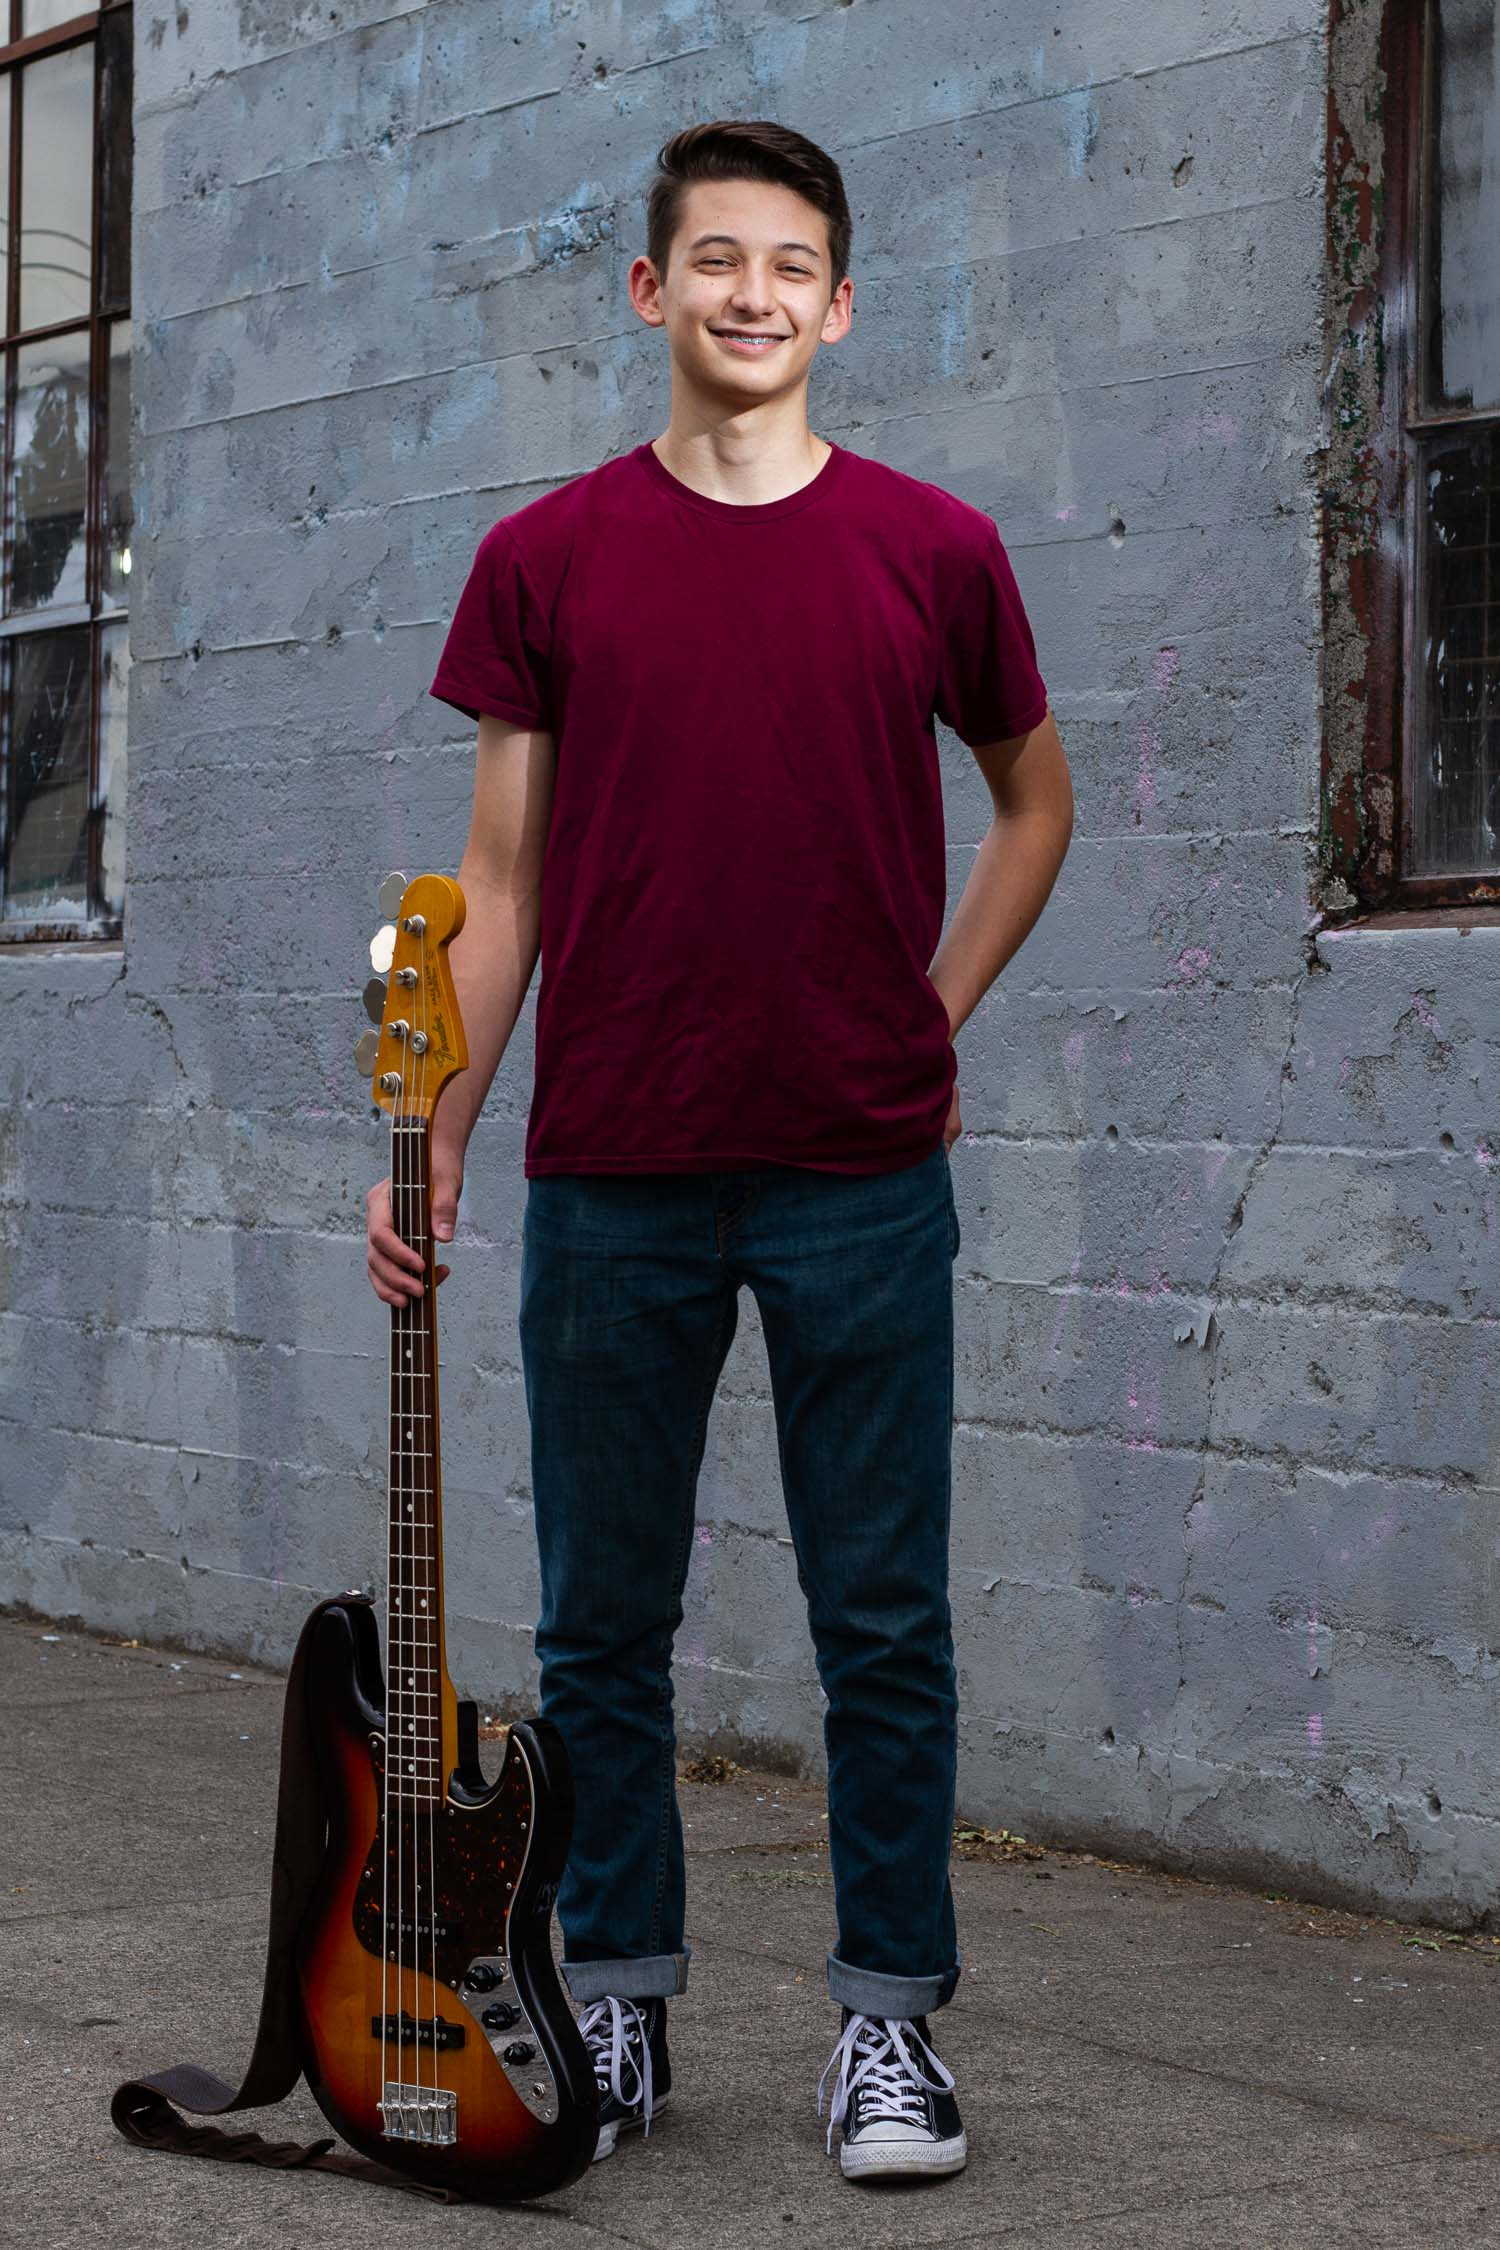 Senior portraits in Portland with Noah: incorporating his bass guitar into the photo